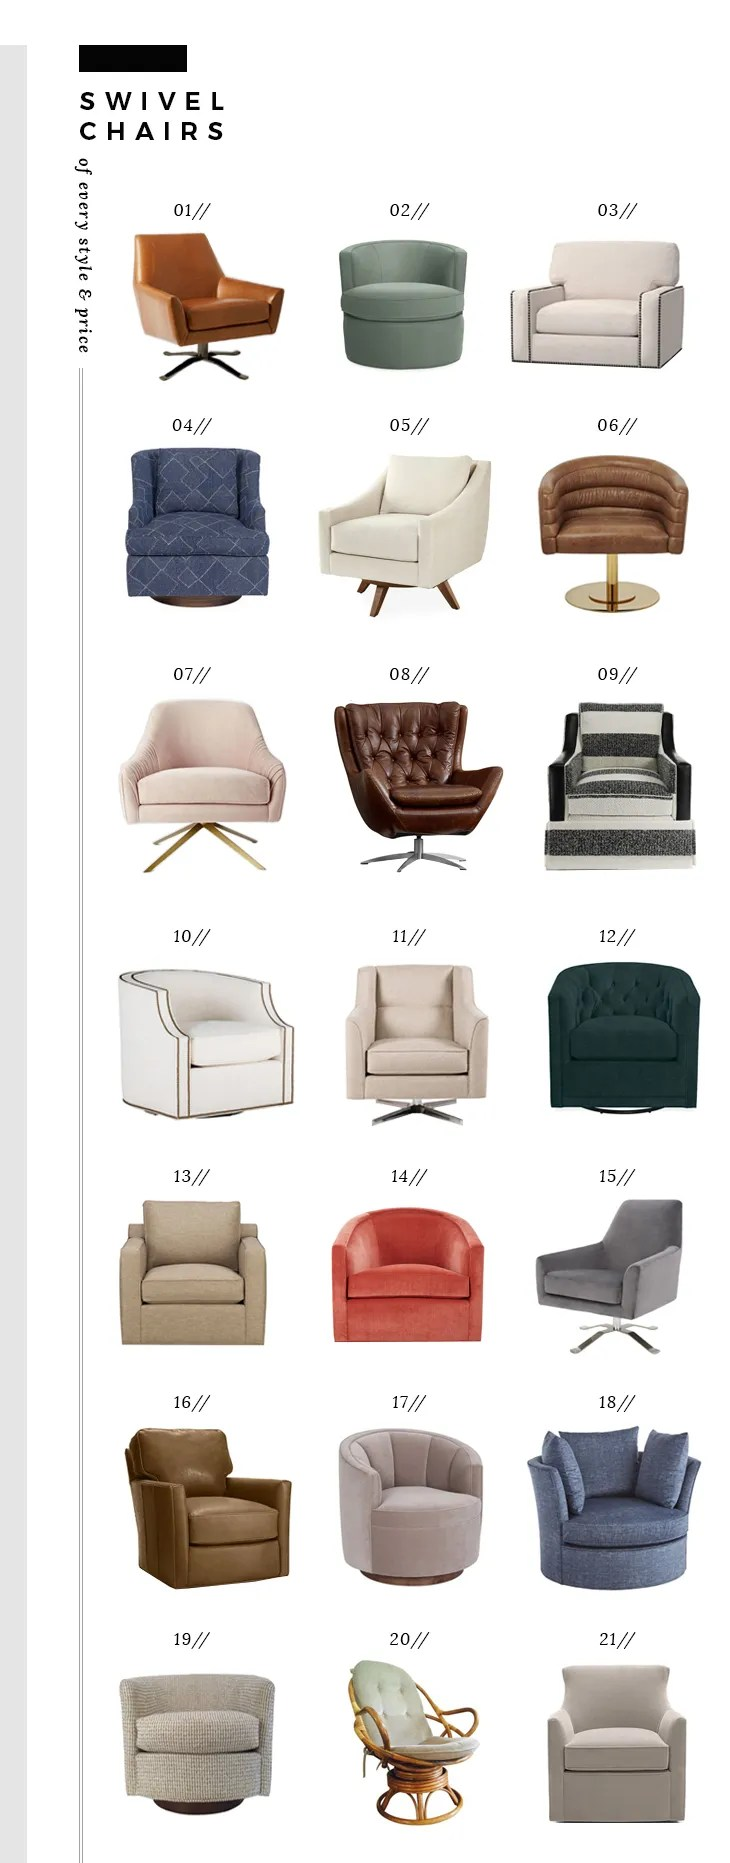 Swivel Chairs of Every Price and Style